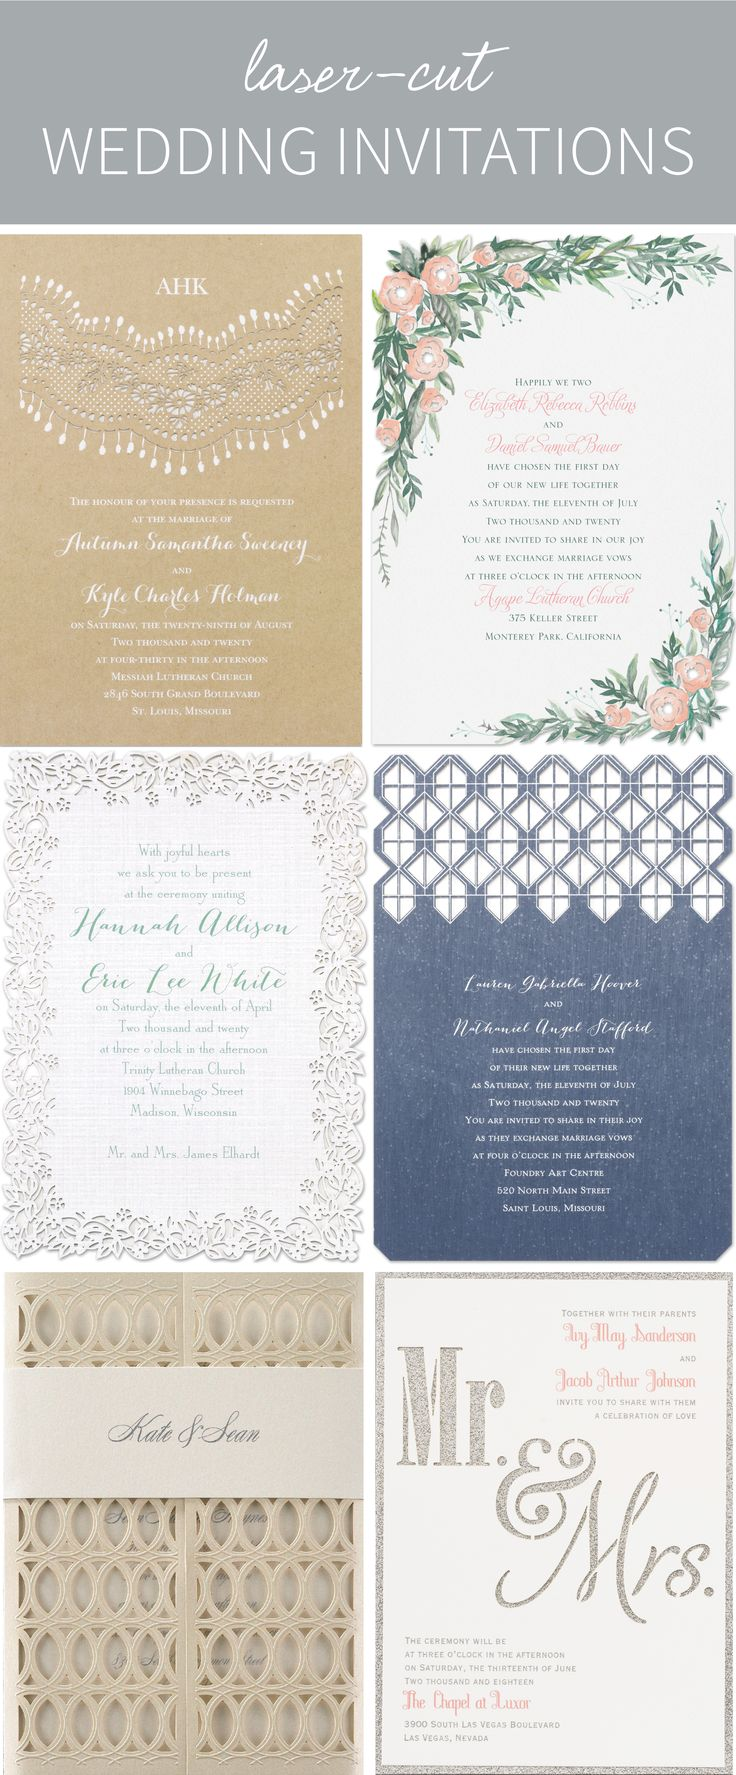 79 Best Laser Cut Invitations Images On Pinterest Laser Cut